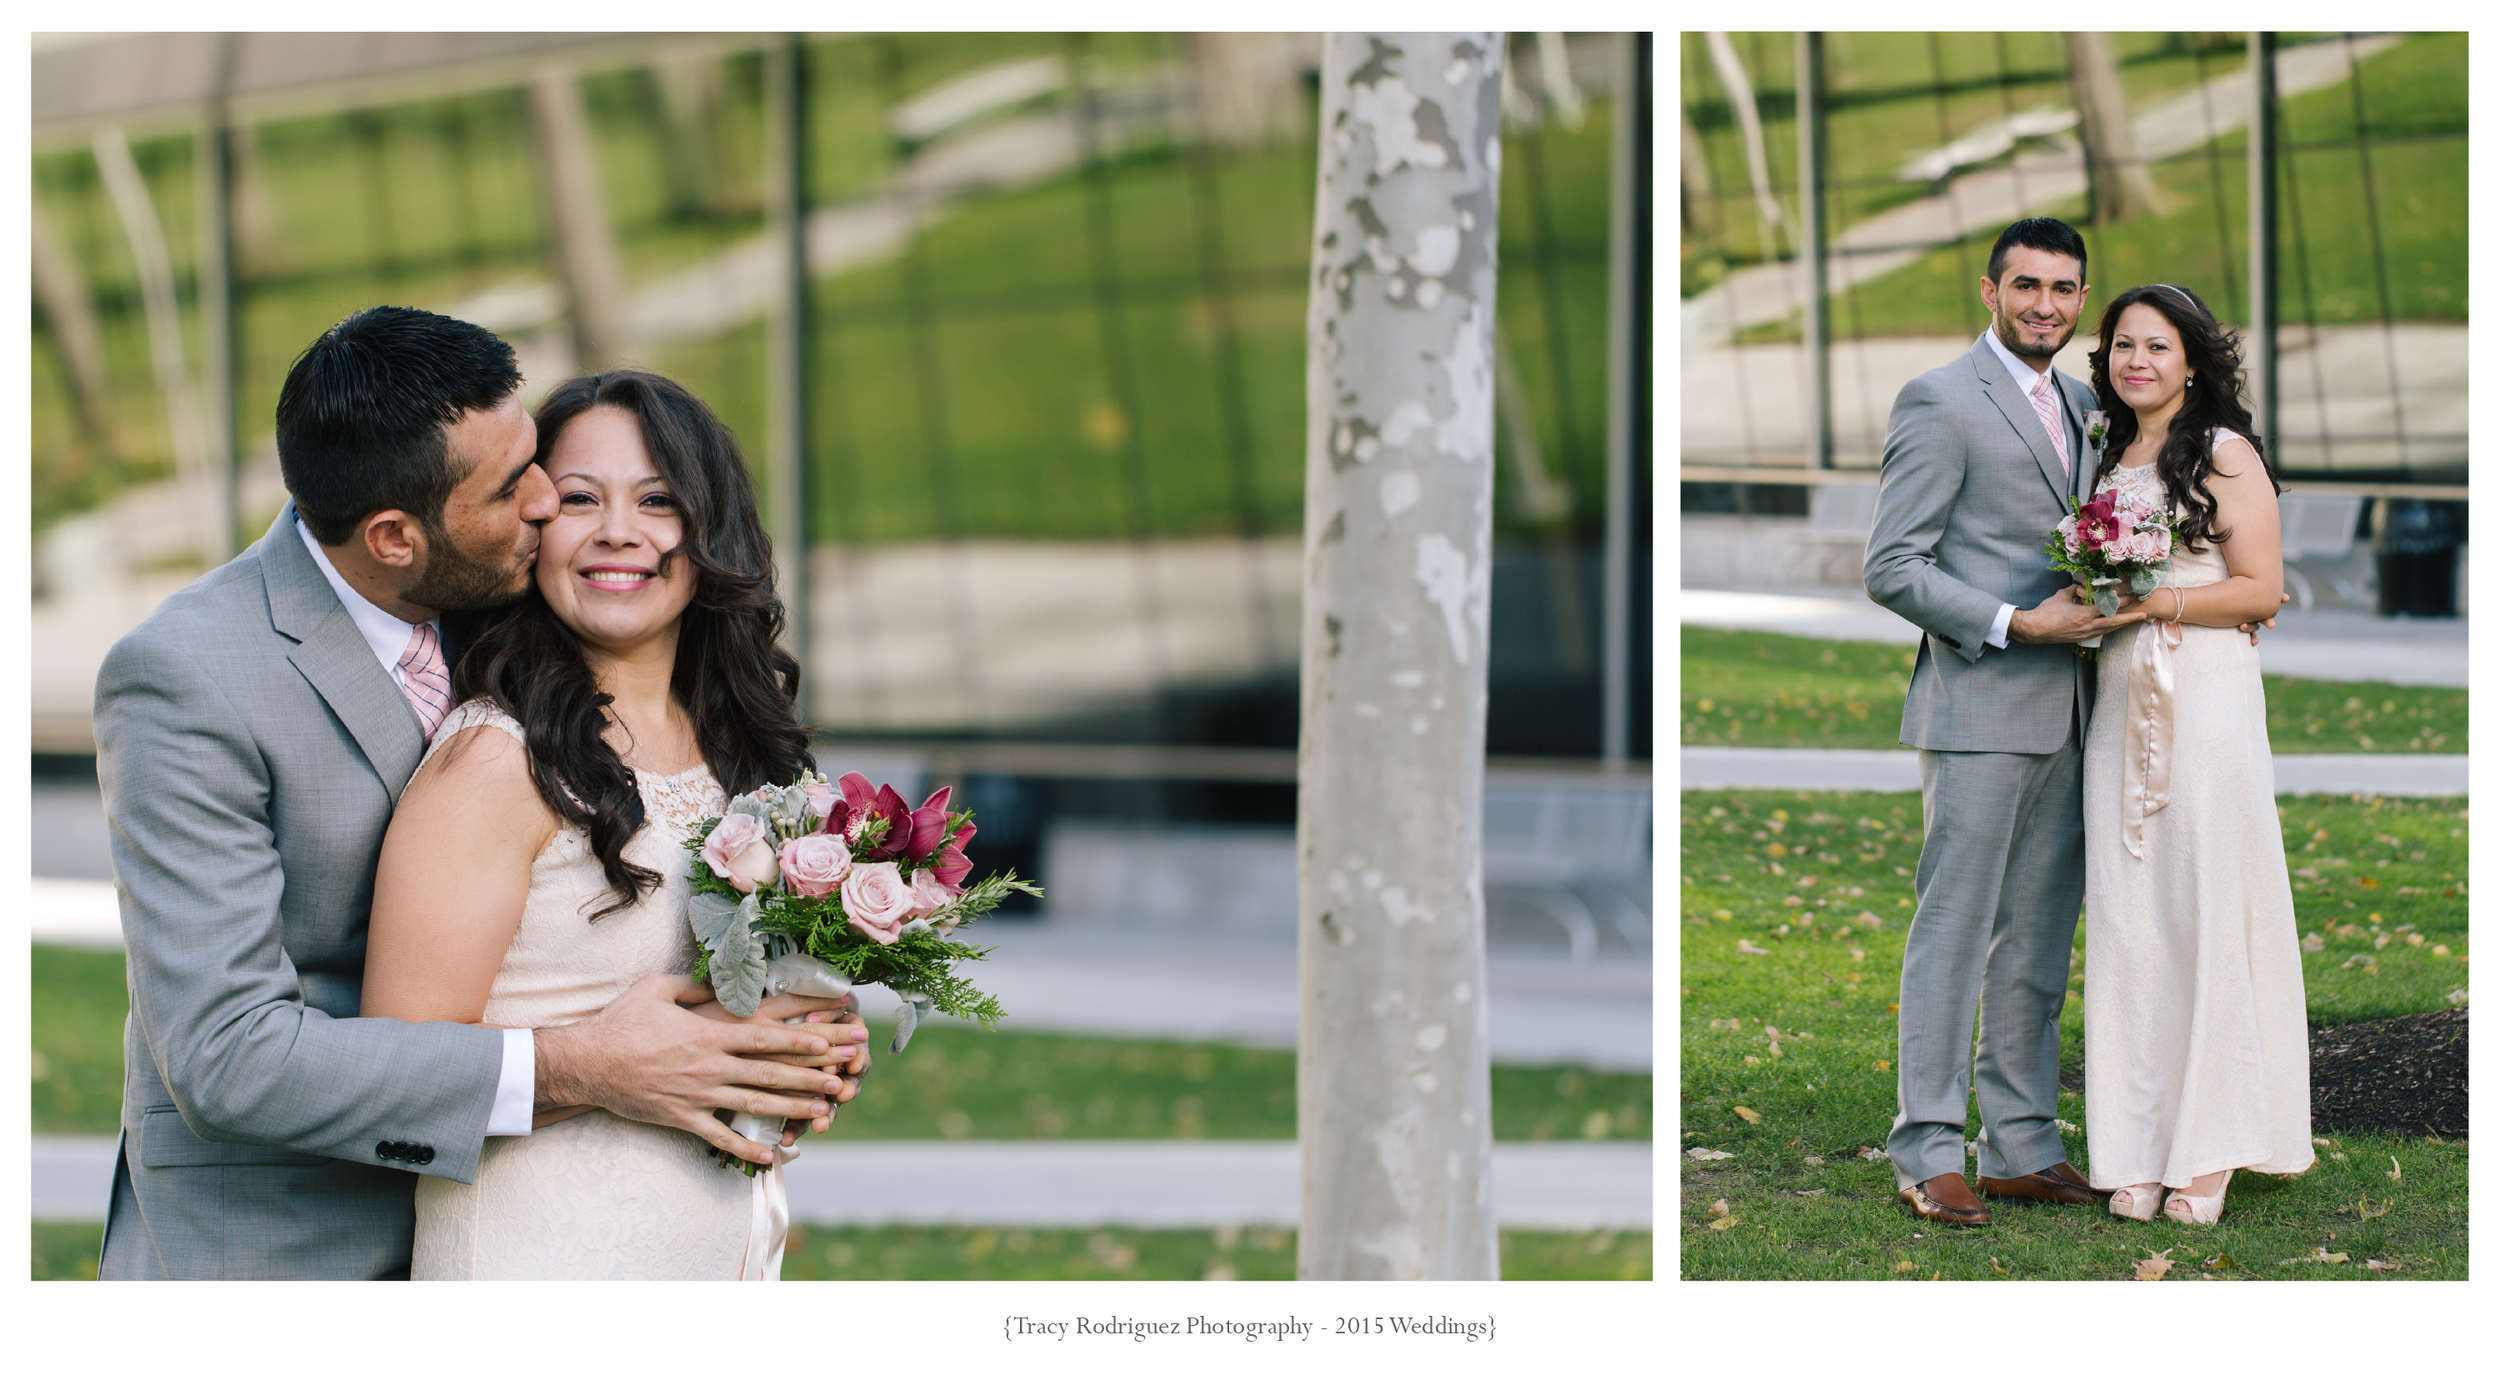 Cambridge, MA Wedding at Area Four in Technology Square by Tracy Rodriguez Photography